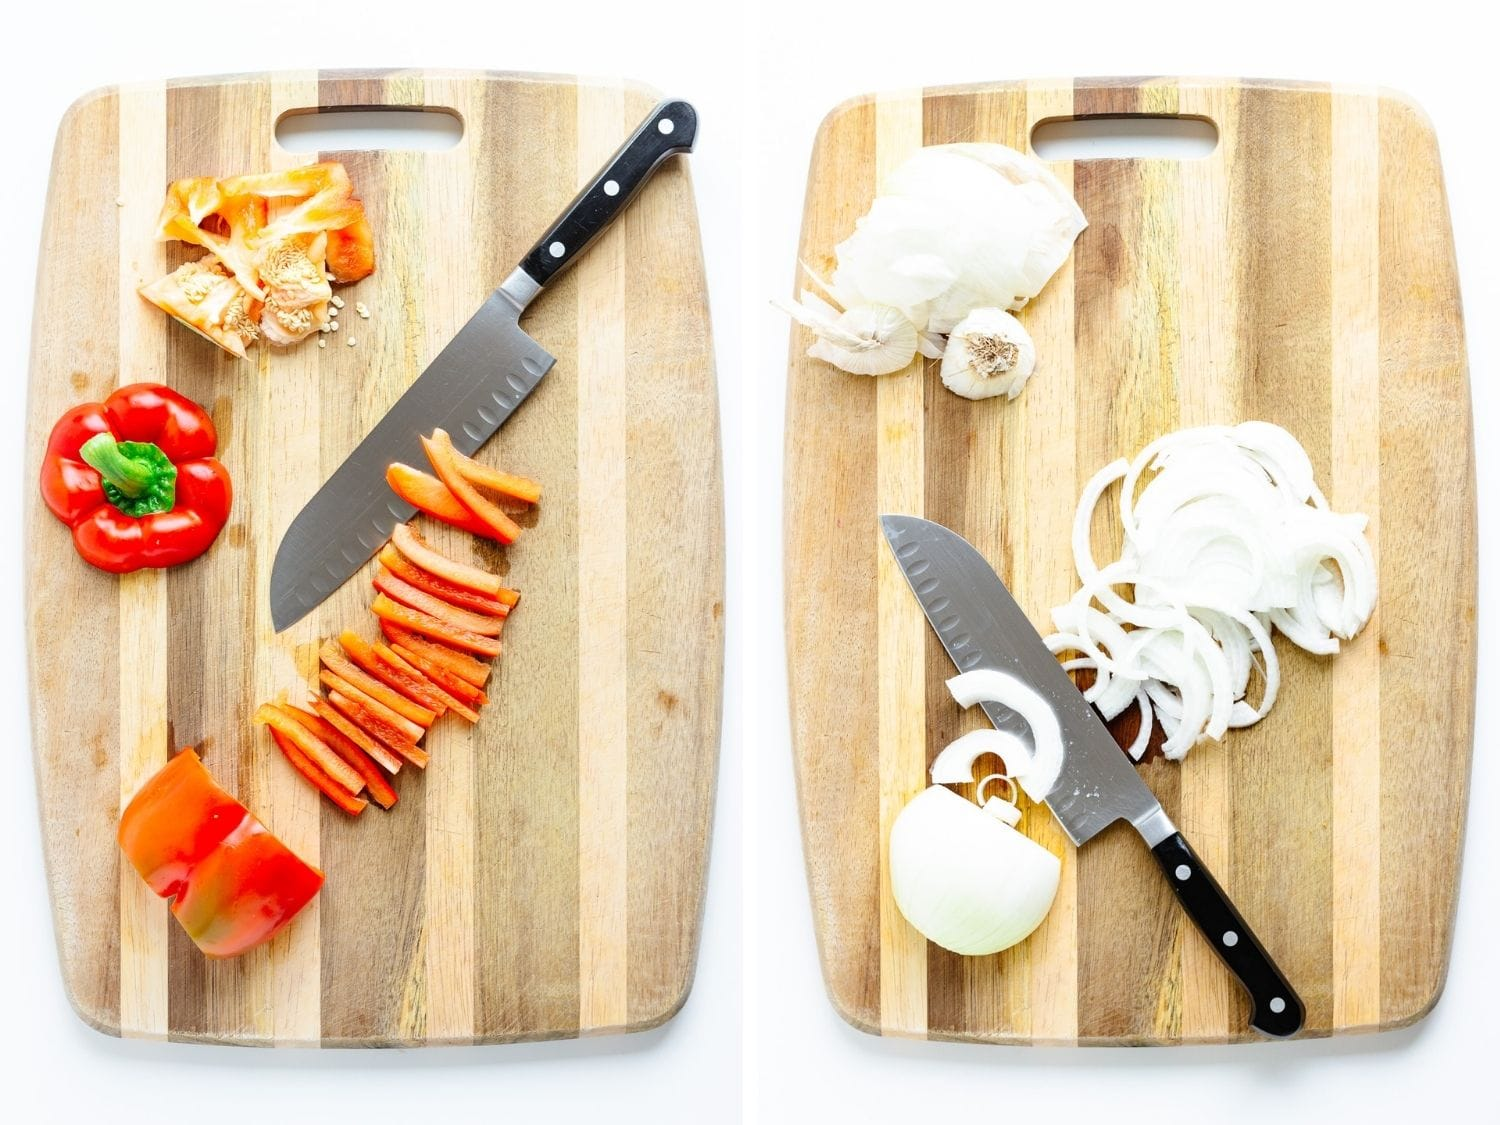 Collage showing a red pepper and an onion being sliced into strips on a wooden cutting board.